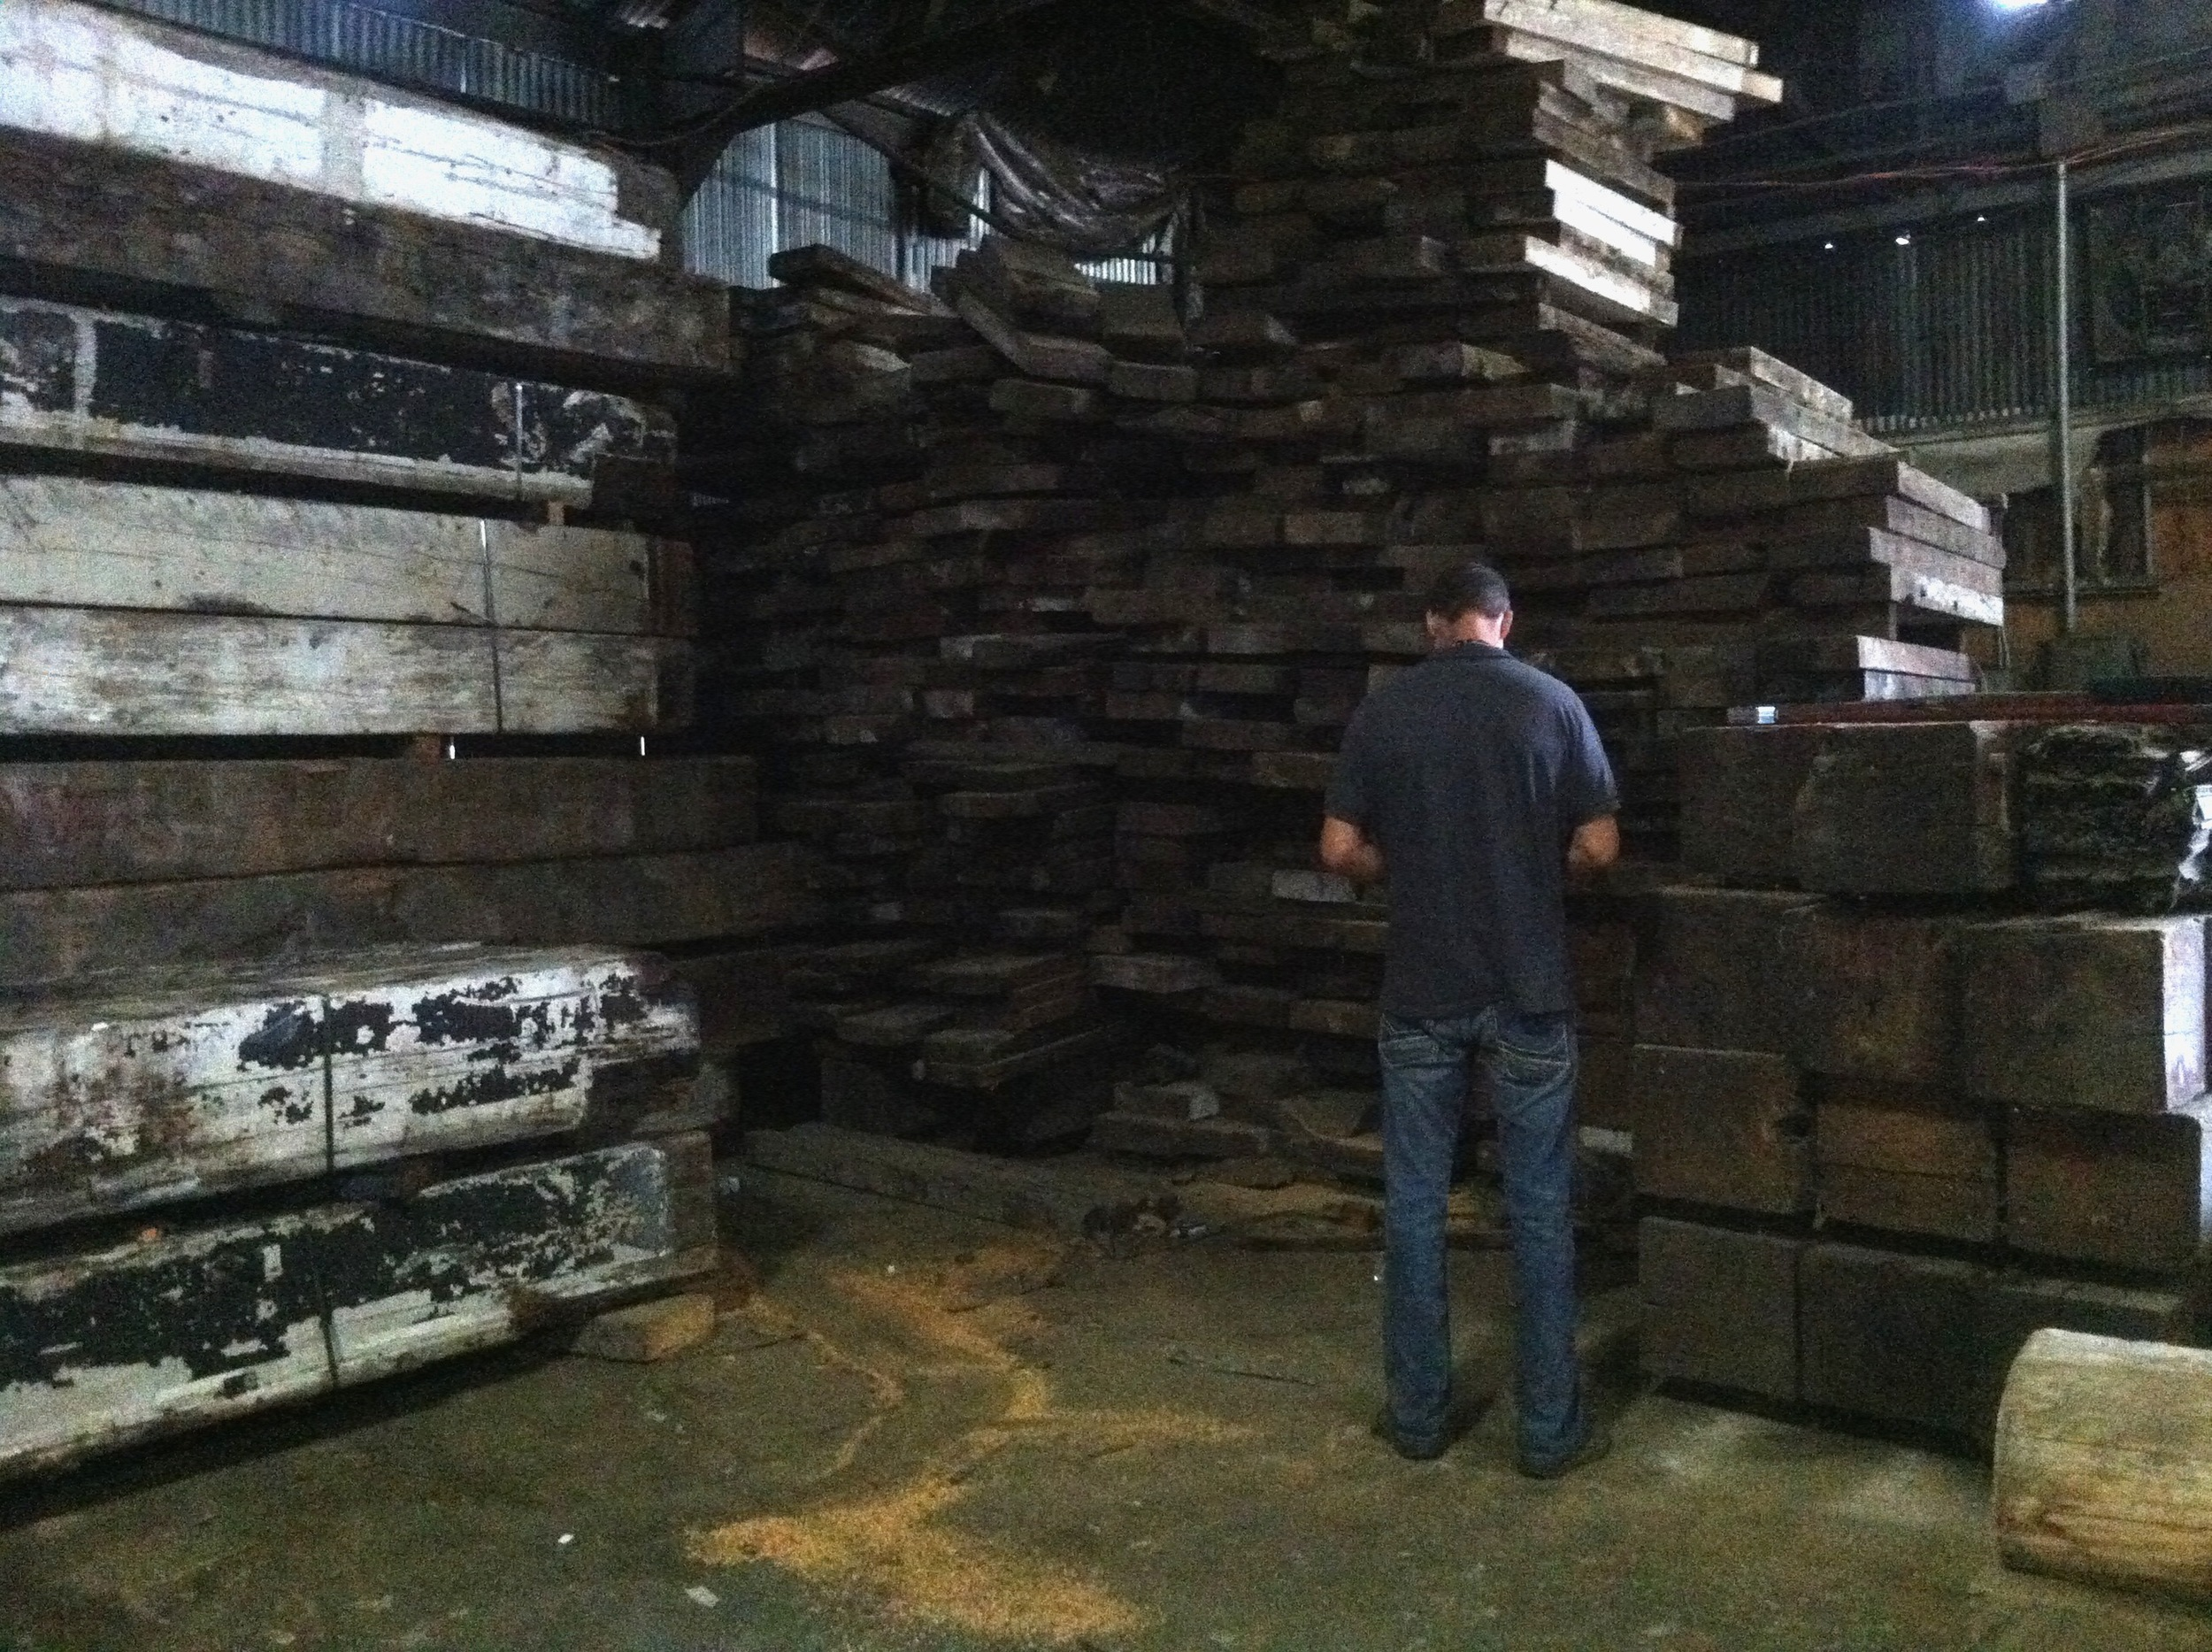 At the lumber yard